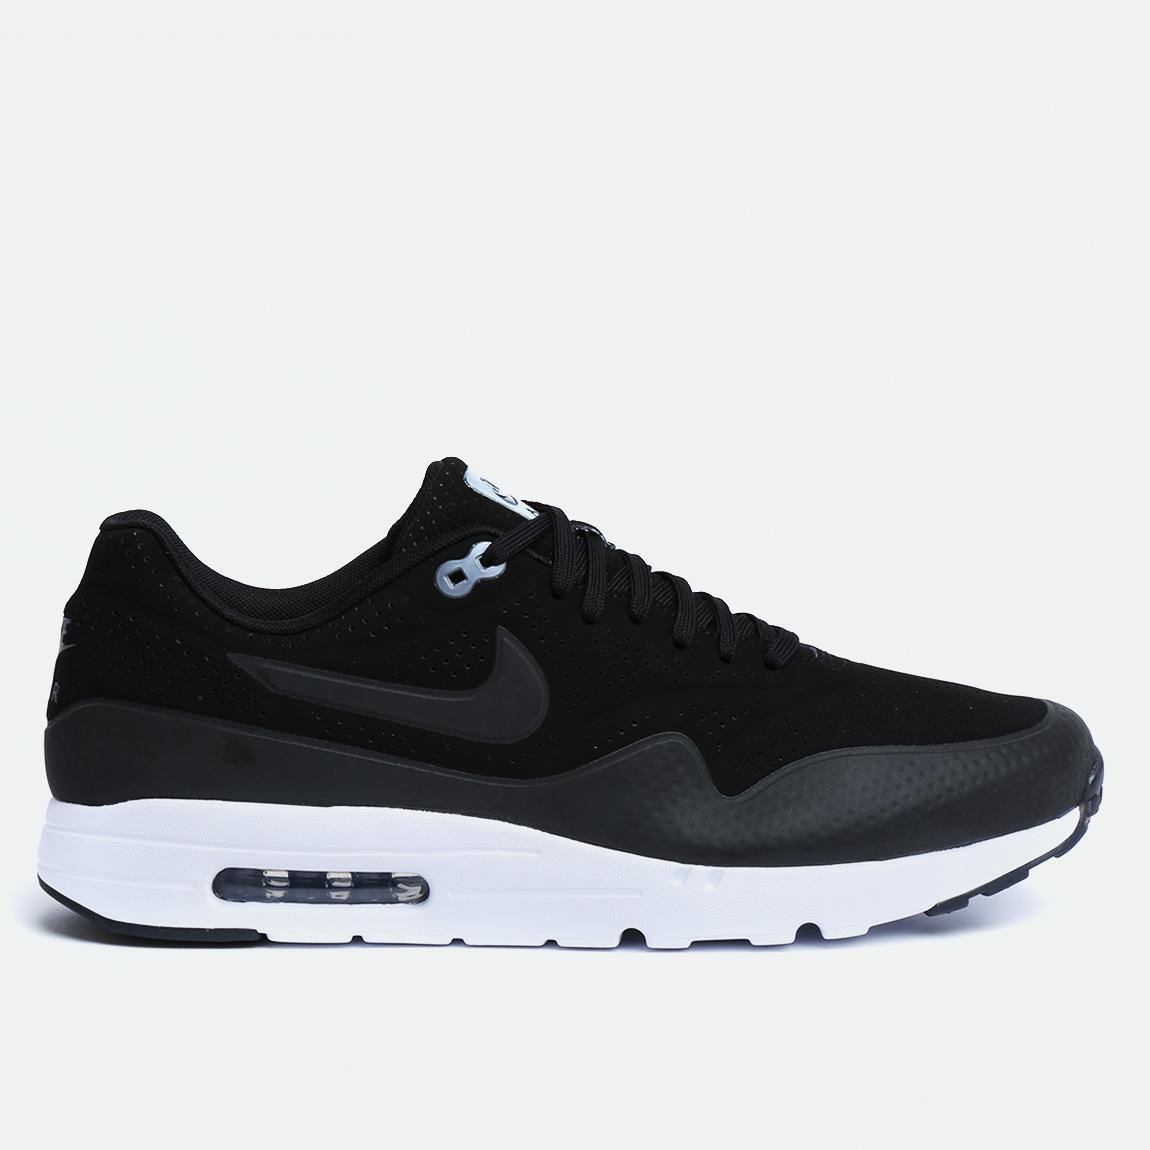 reputable site b9c3b 6104b Air Max 1 Ultra Moire - BLACK DARK GREY Nike Sneakers   Superbalist.com